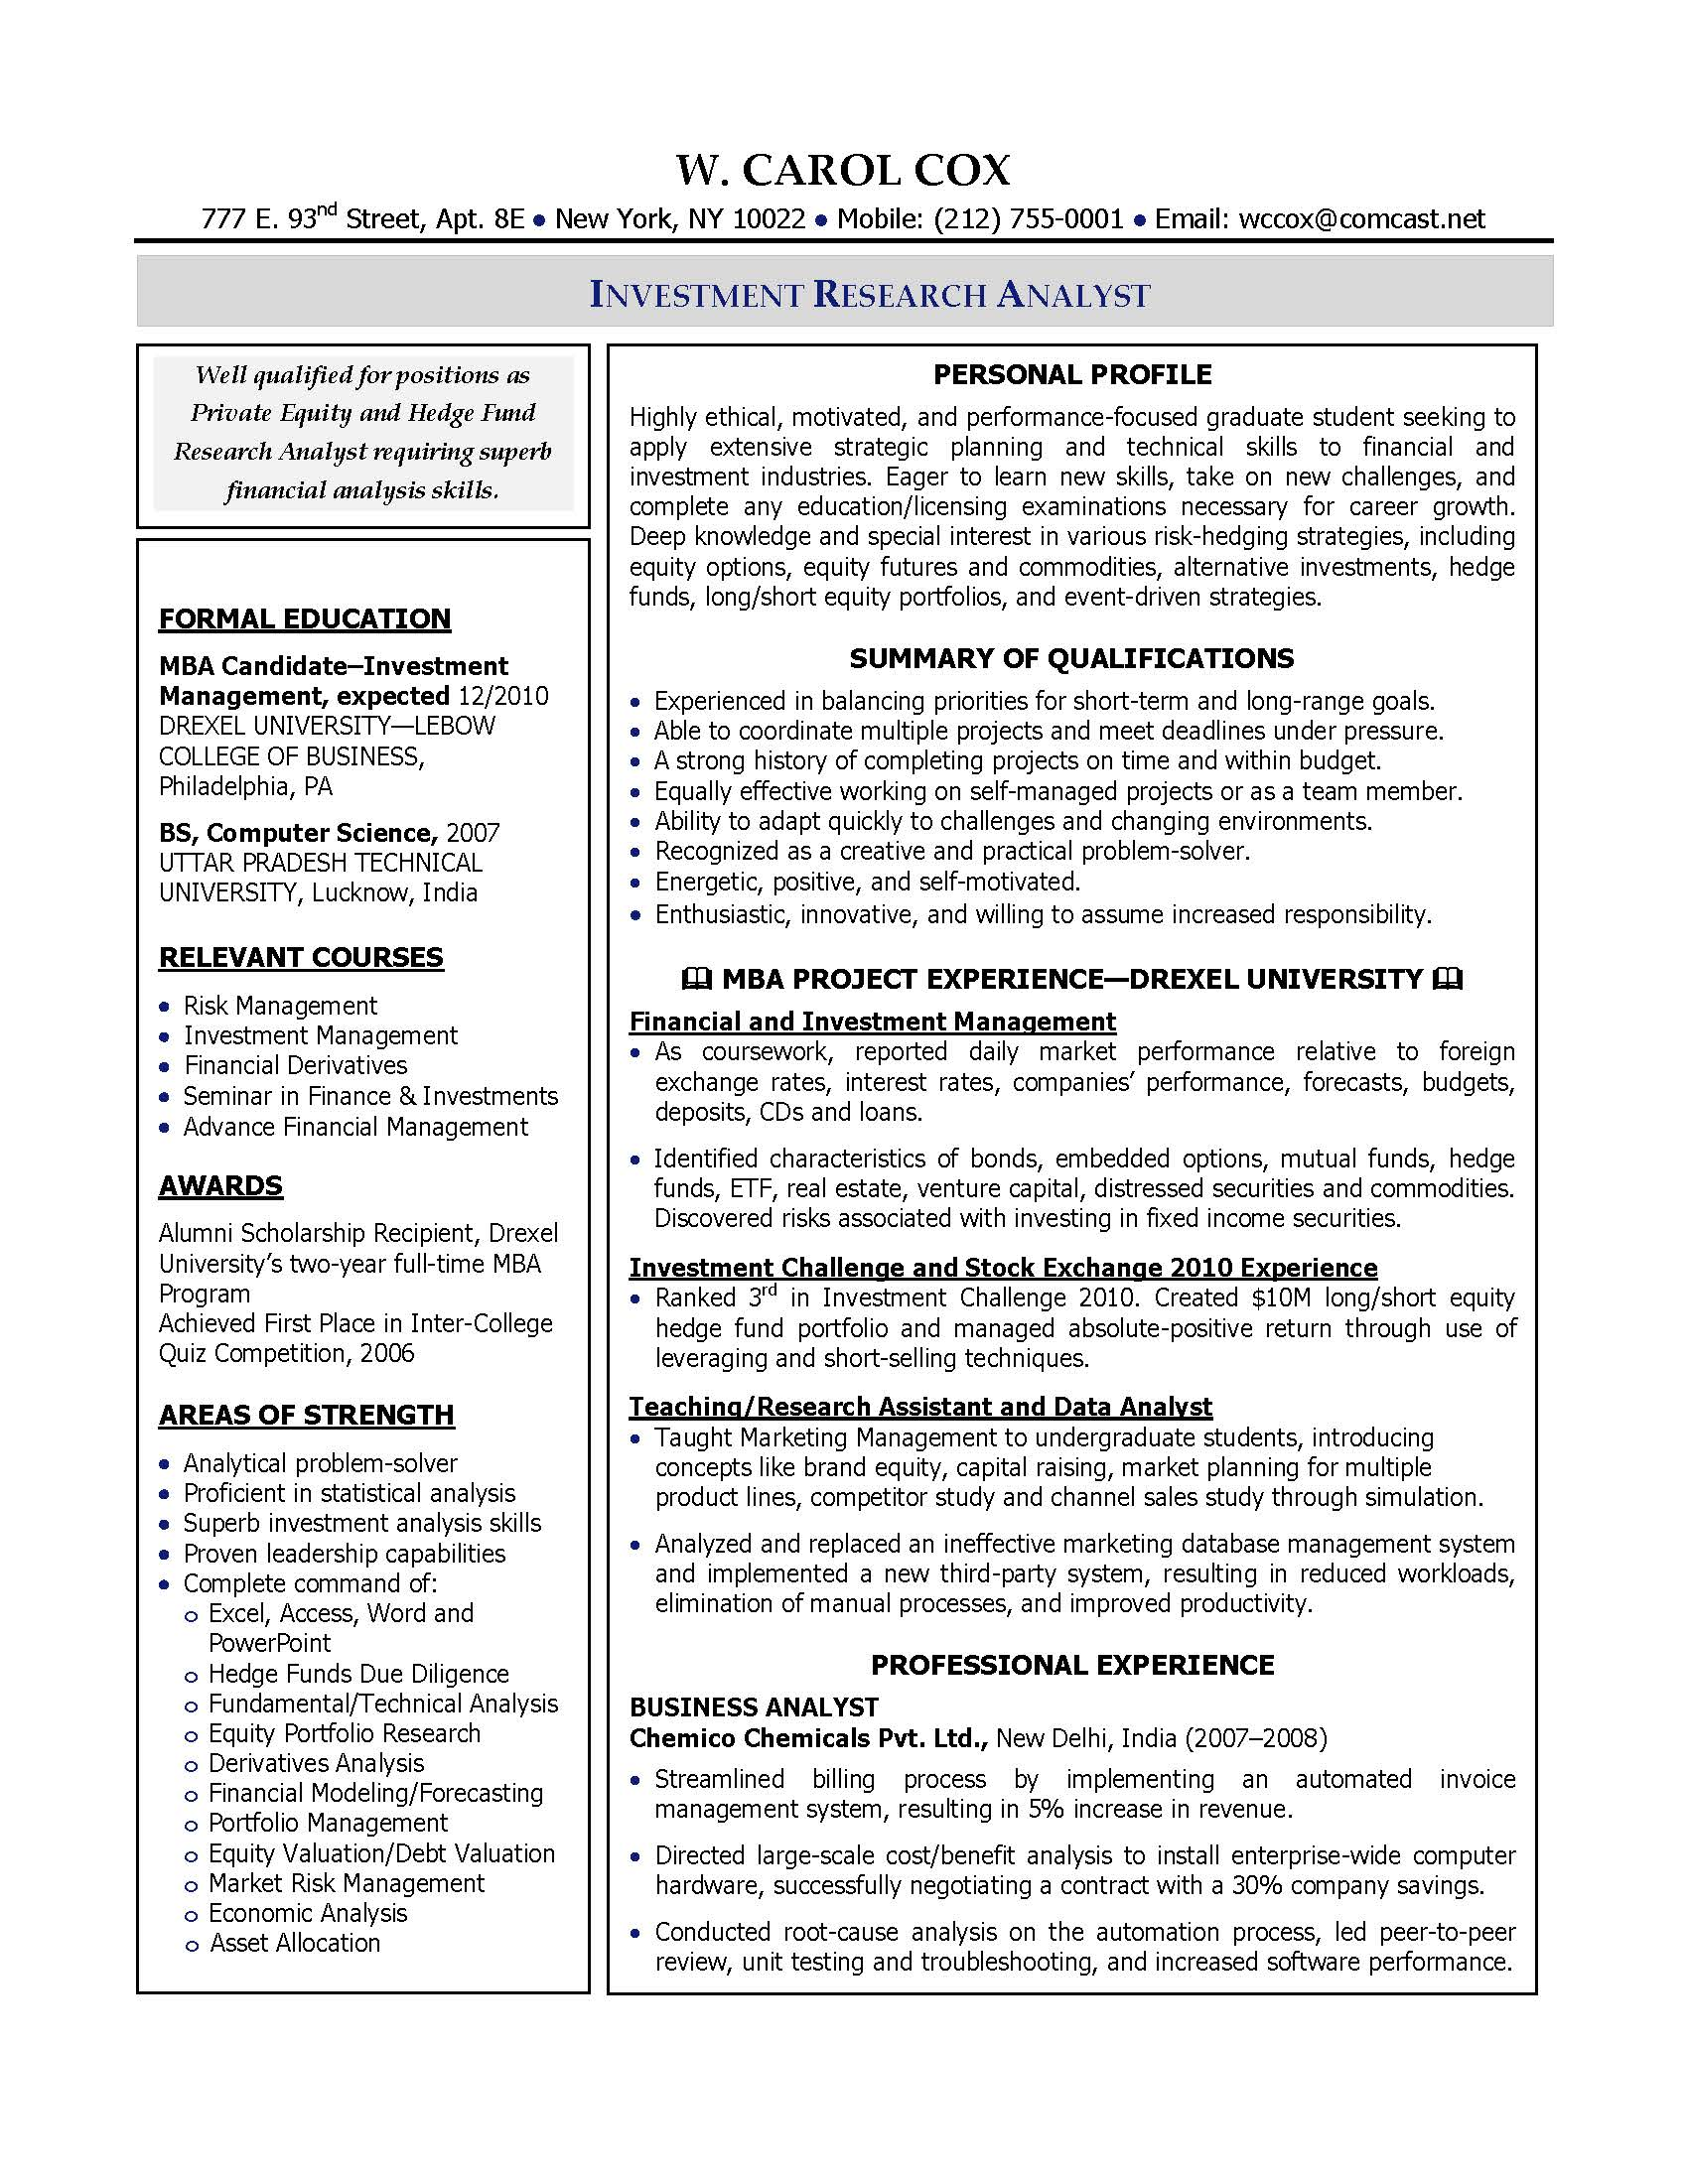 investment research analyst resume sample provided by elite resume writing services - Financial Resume Example